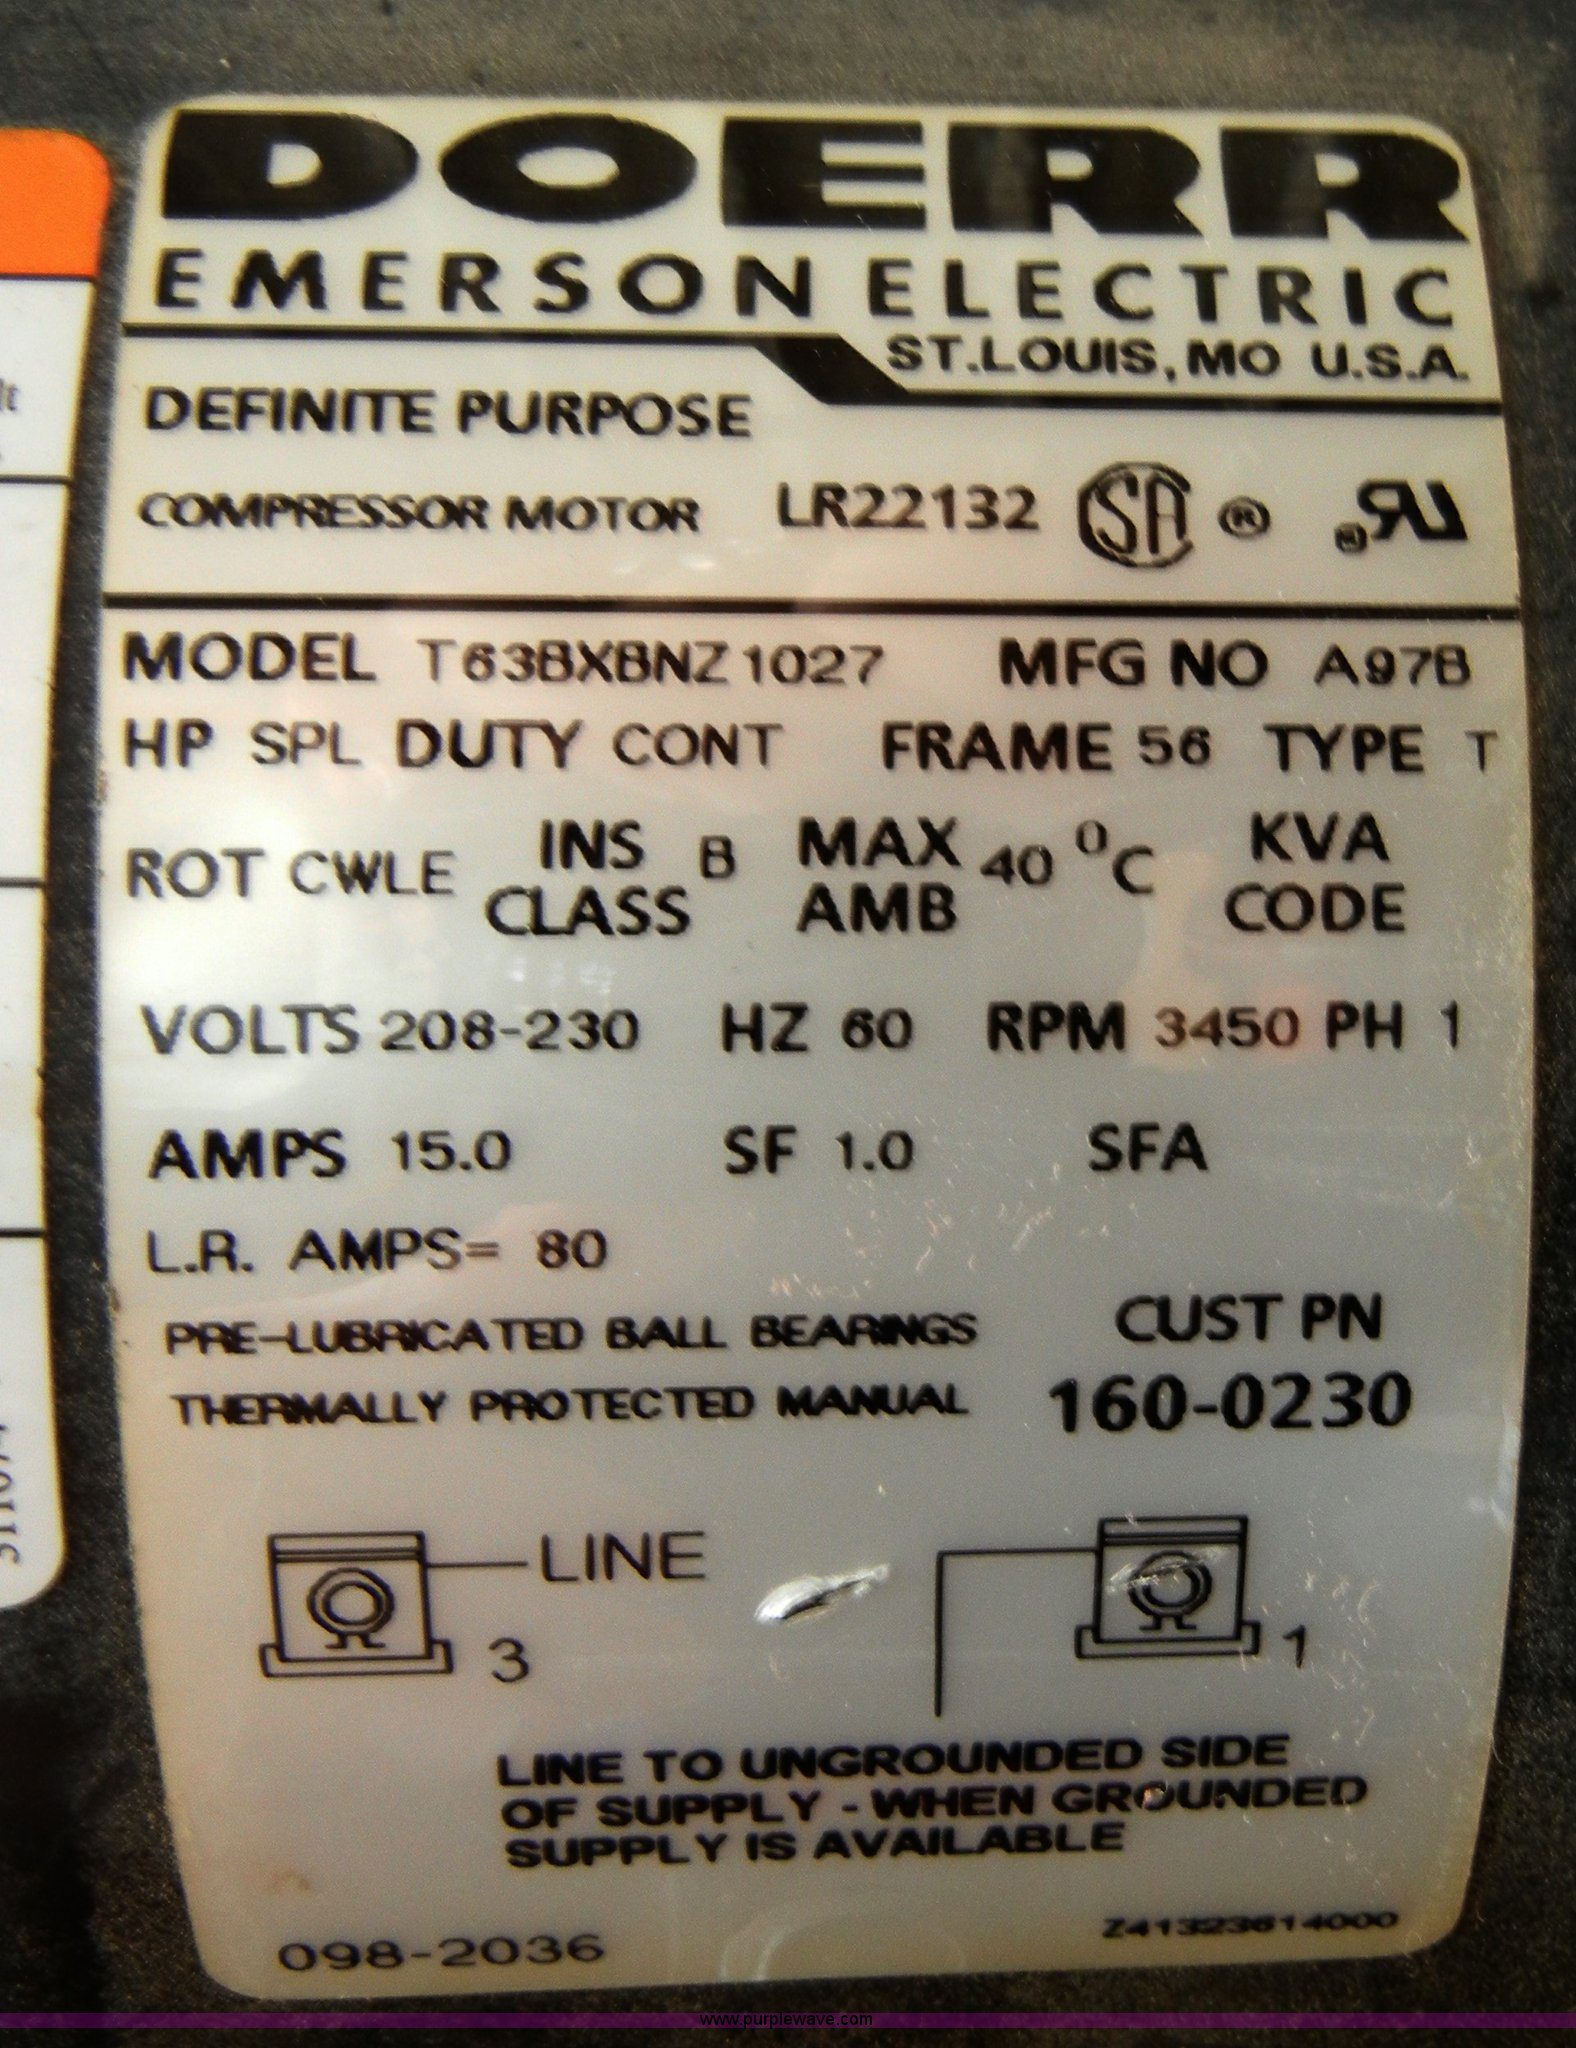 hight resolution of doerr motor lr22132 manual